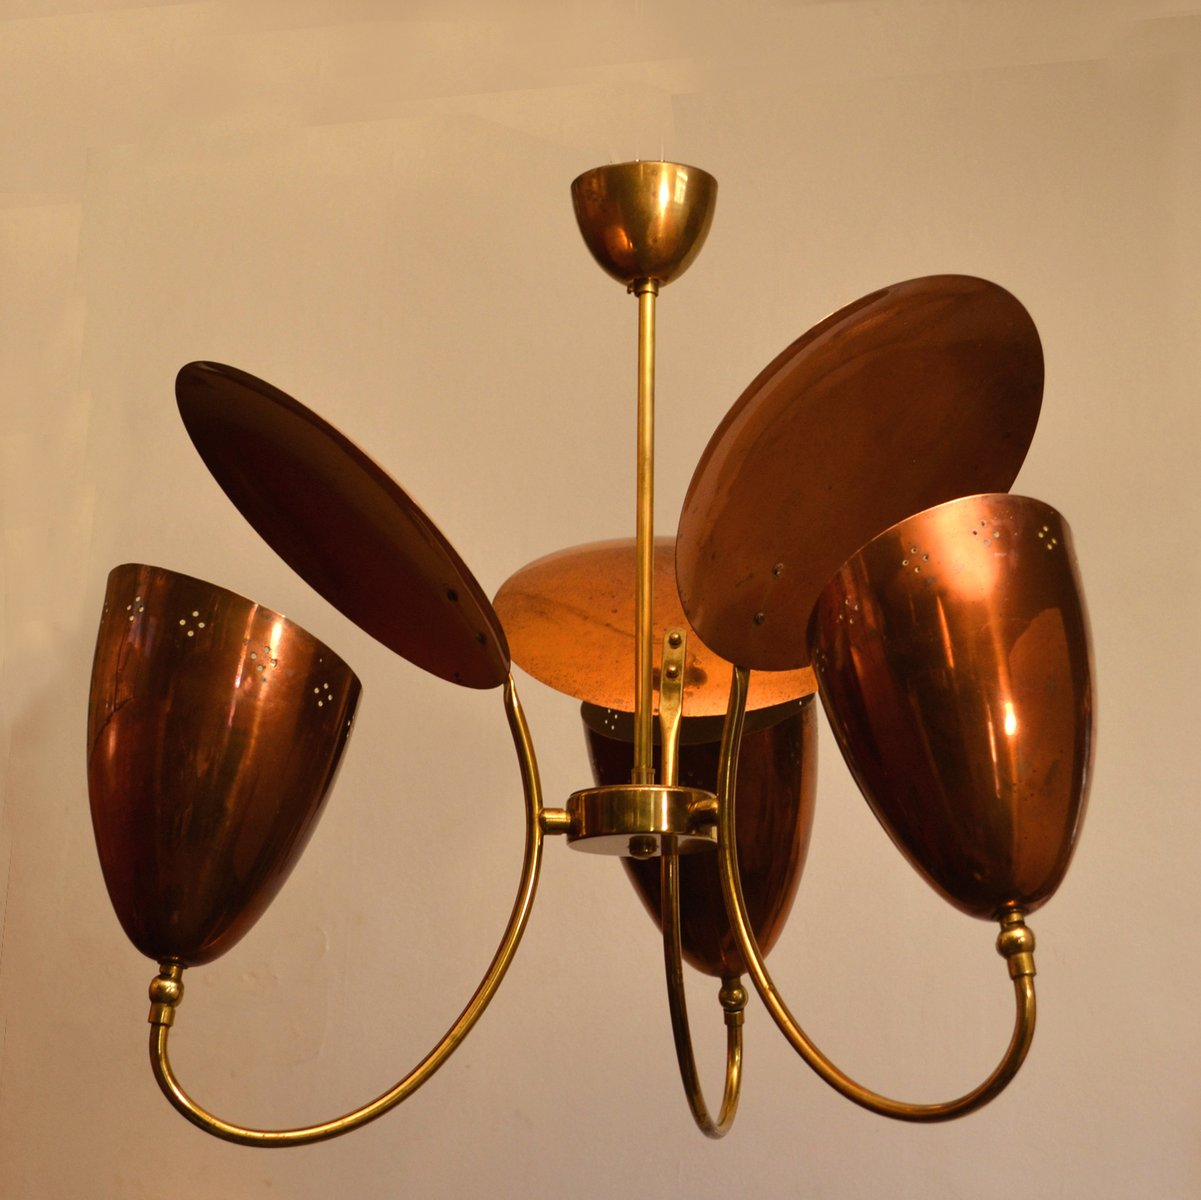 3 arm chandelier with reflector in perforated copper brass 1950s 3 arm chandelier with reflector in perforated copper brass 1950s aloadofball Image collections